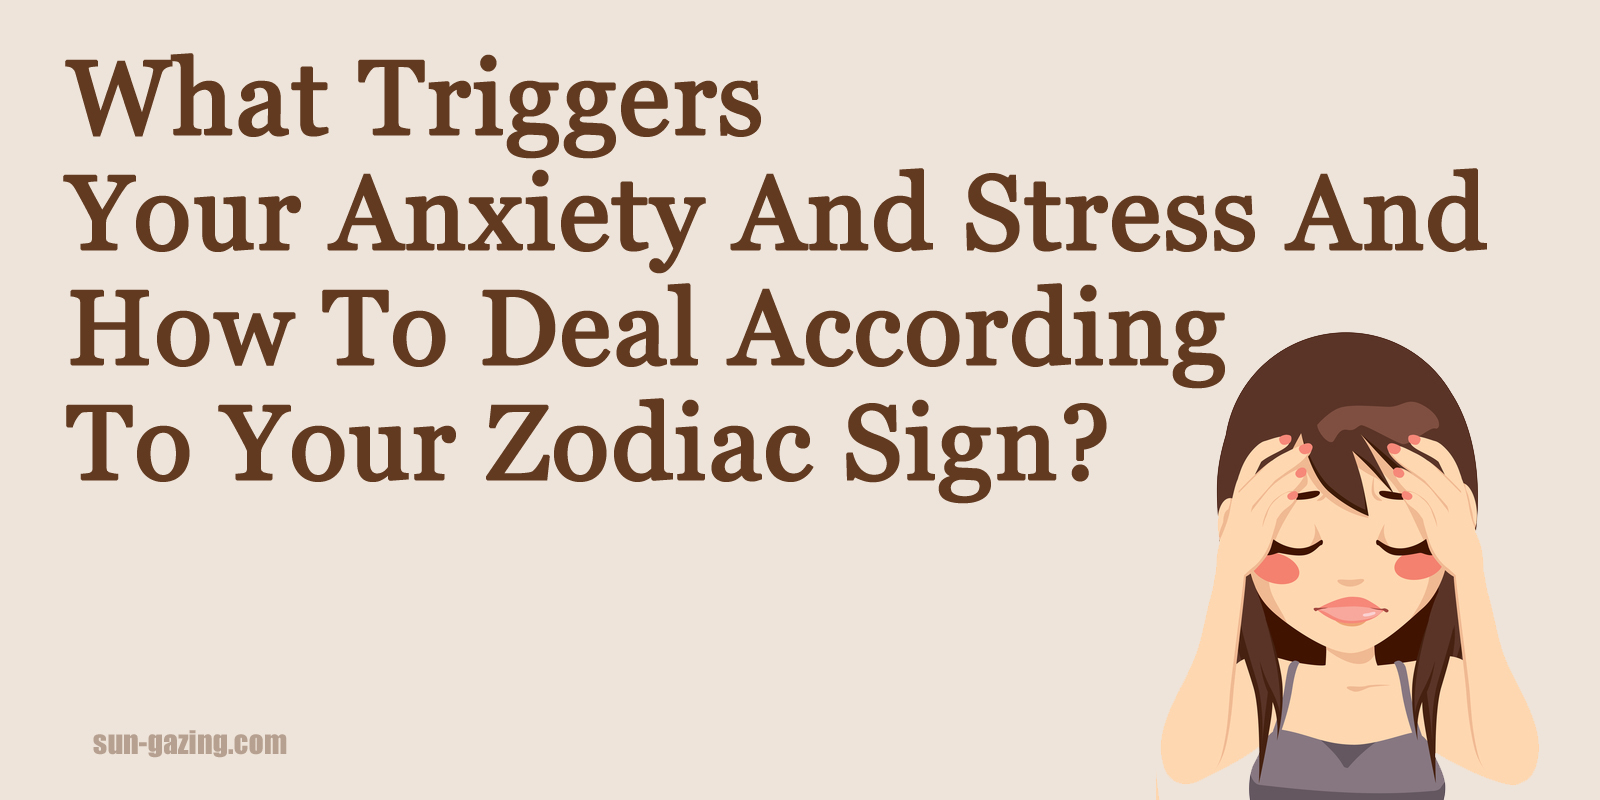 What Triggers Your Anxiety And Stress According To Your Zodiac Sign?